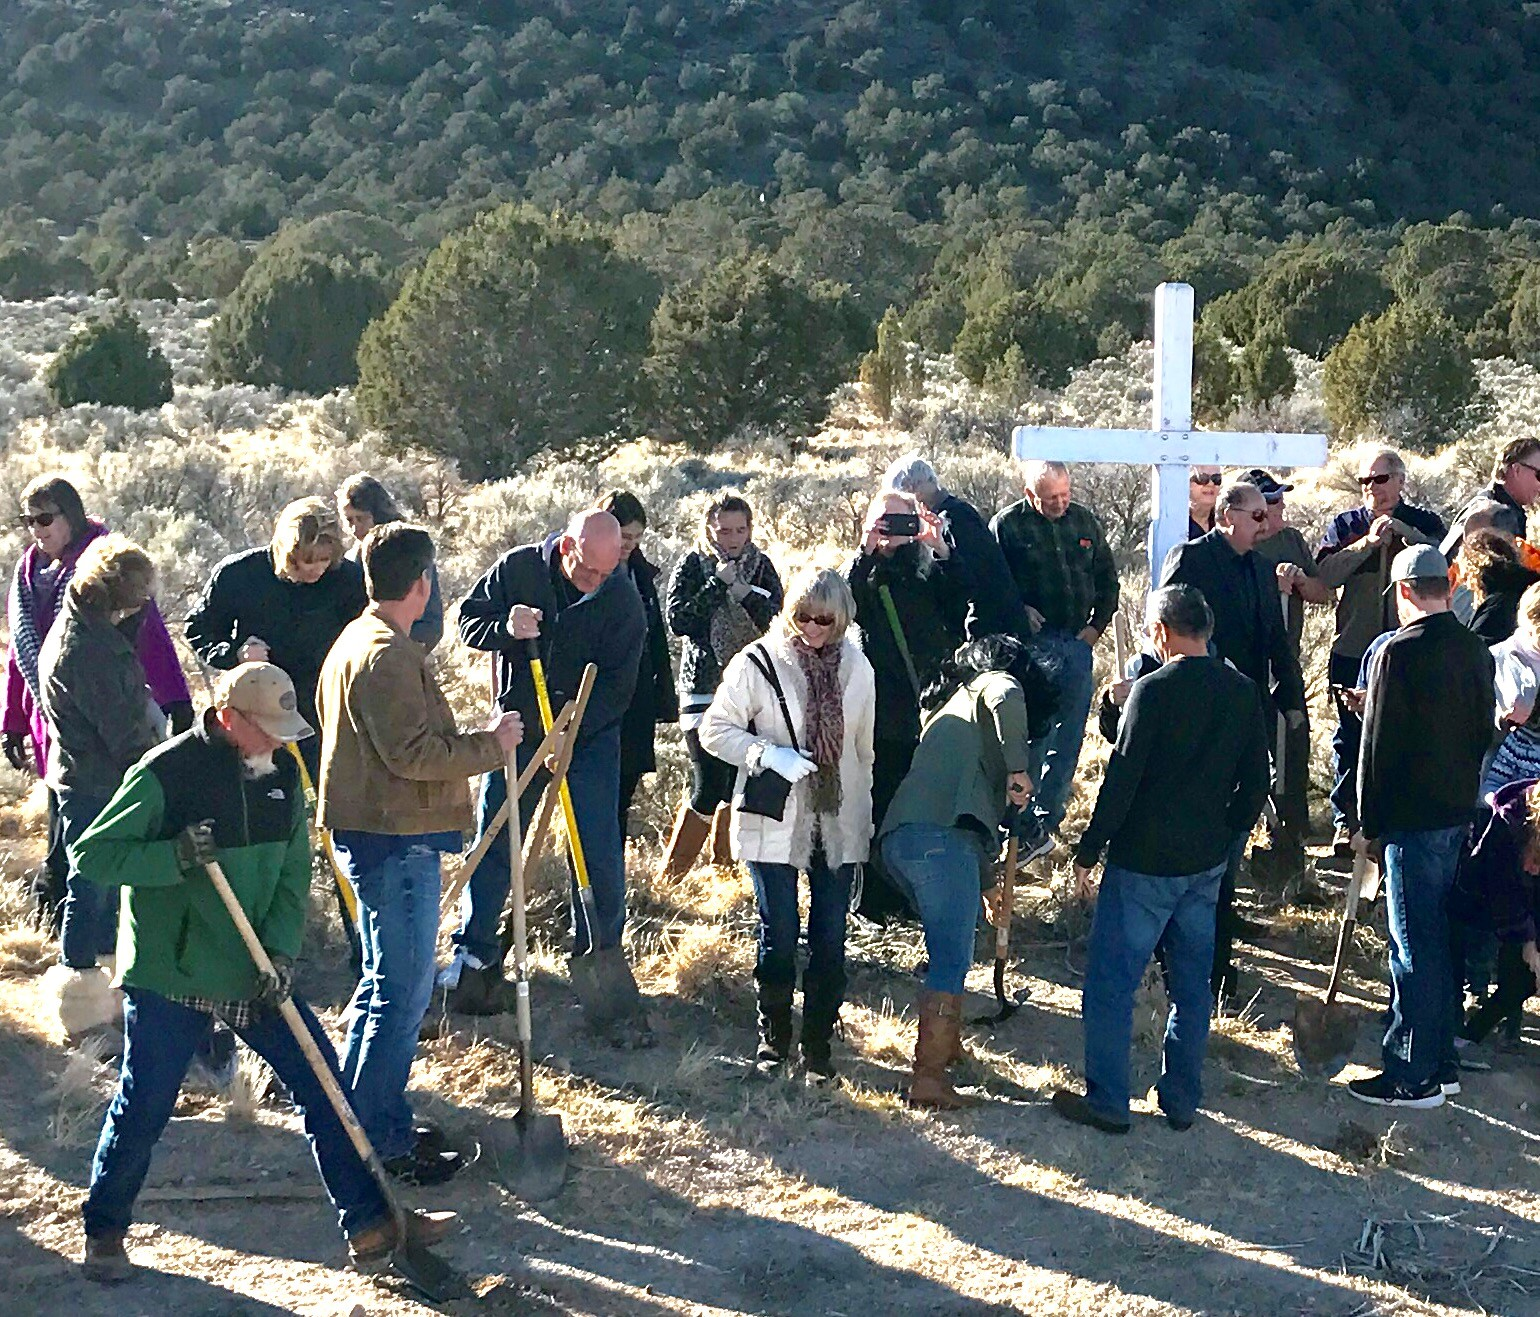 Church members break ground Sunday during the property dedication and groundbreaking at the site for the new Sonrise Fellowship Church. Iron County, Utah, Dec. 4, 2016 | Photo by Tracie Sullivan, St. George News / Cedar City News